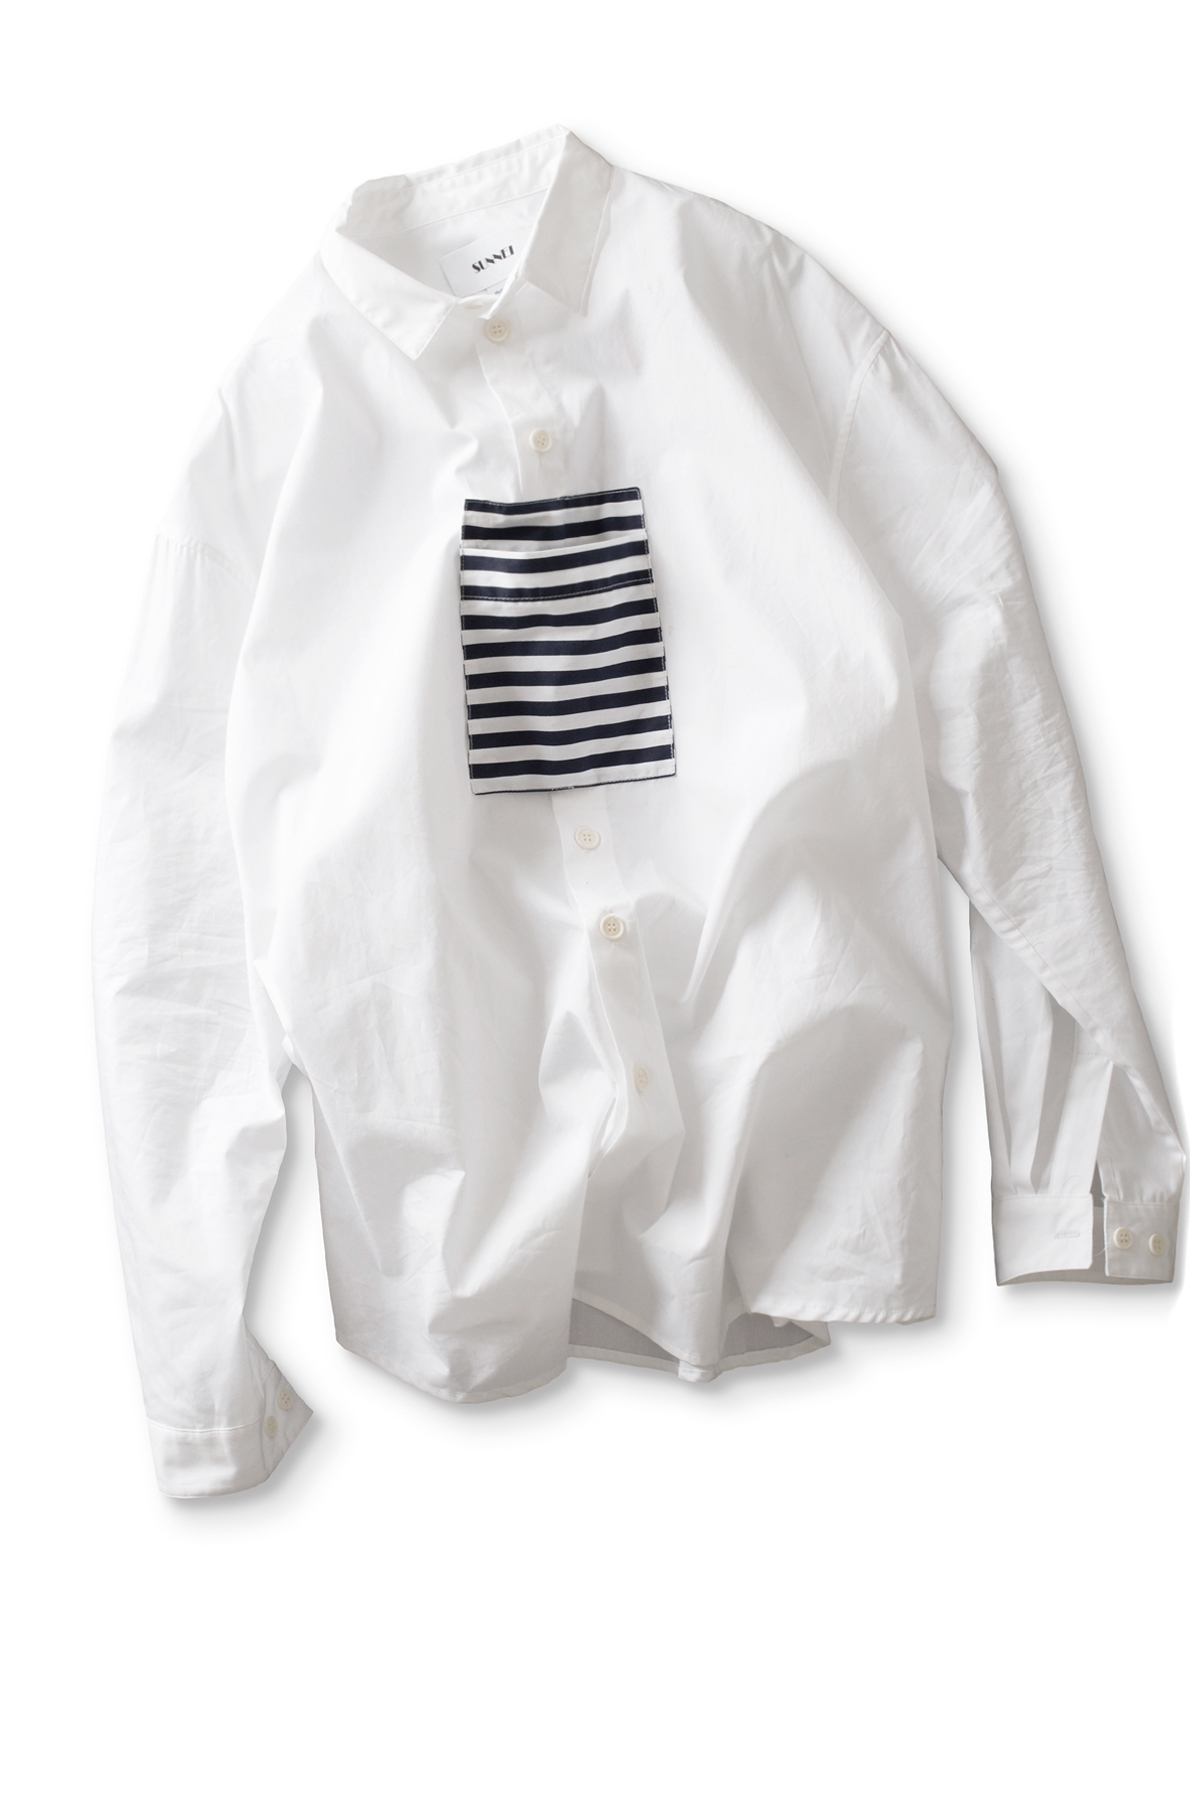 SUNNEI : Shirt With Pocket Panel (White)